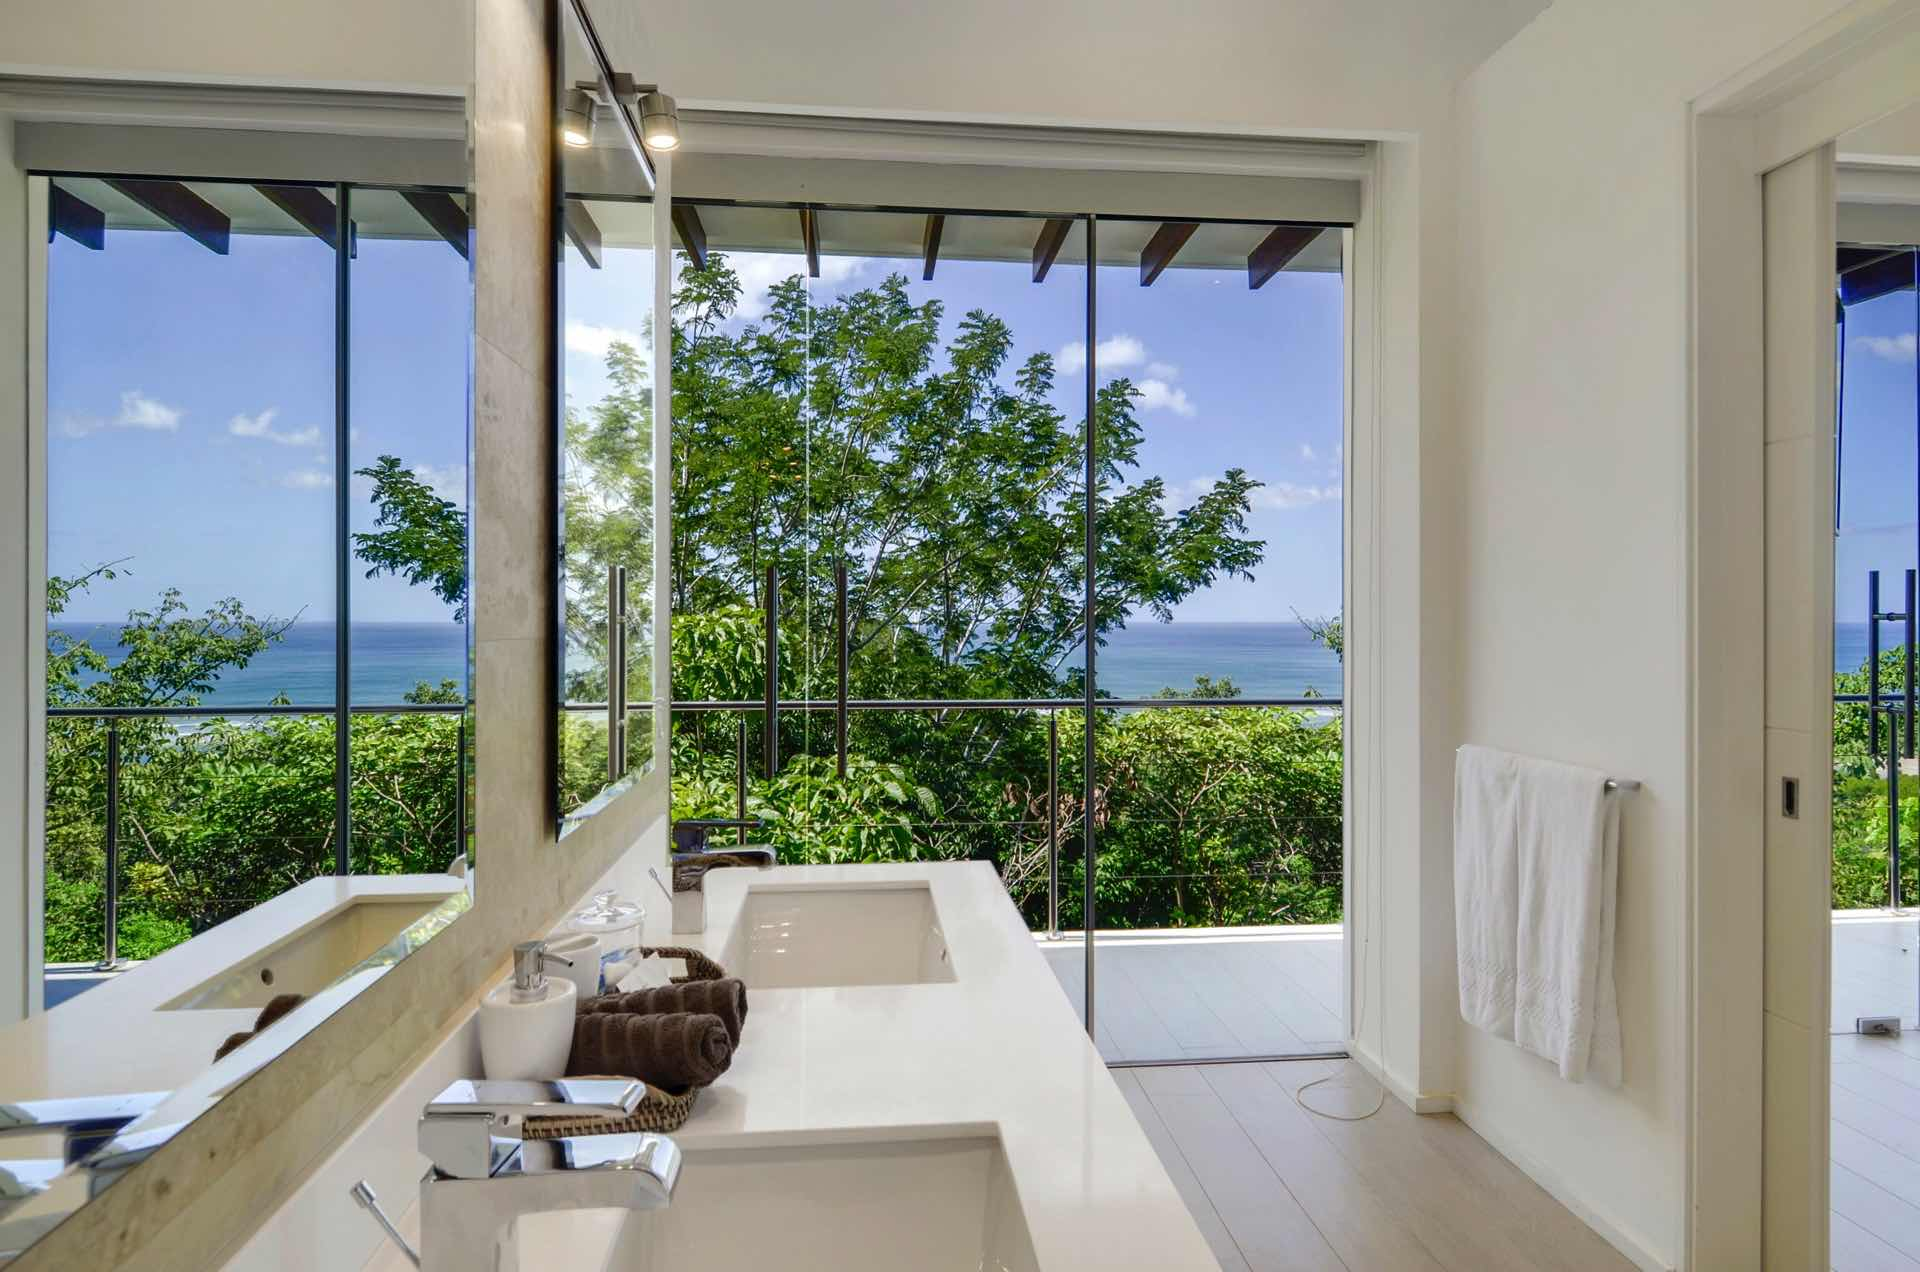 Yet another view from the master bathroom!